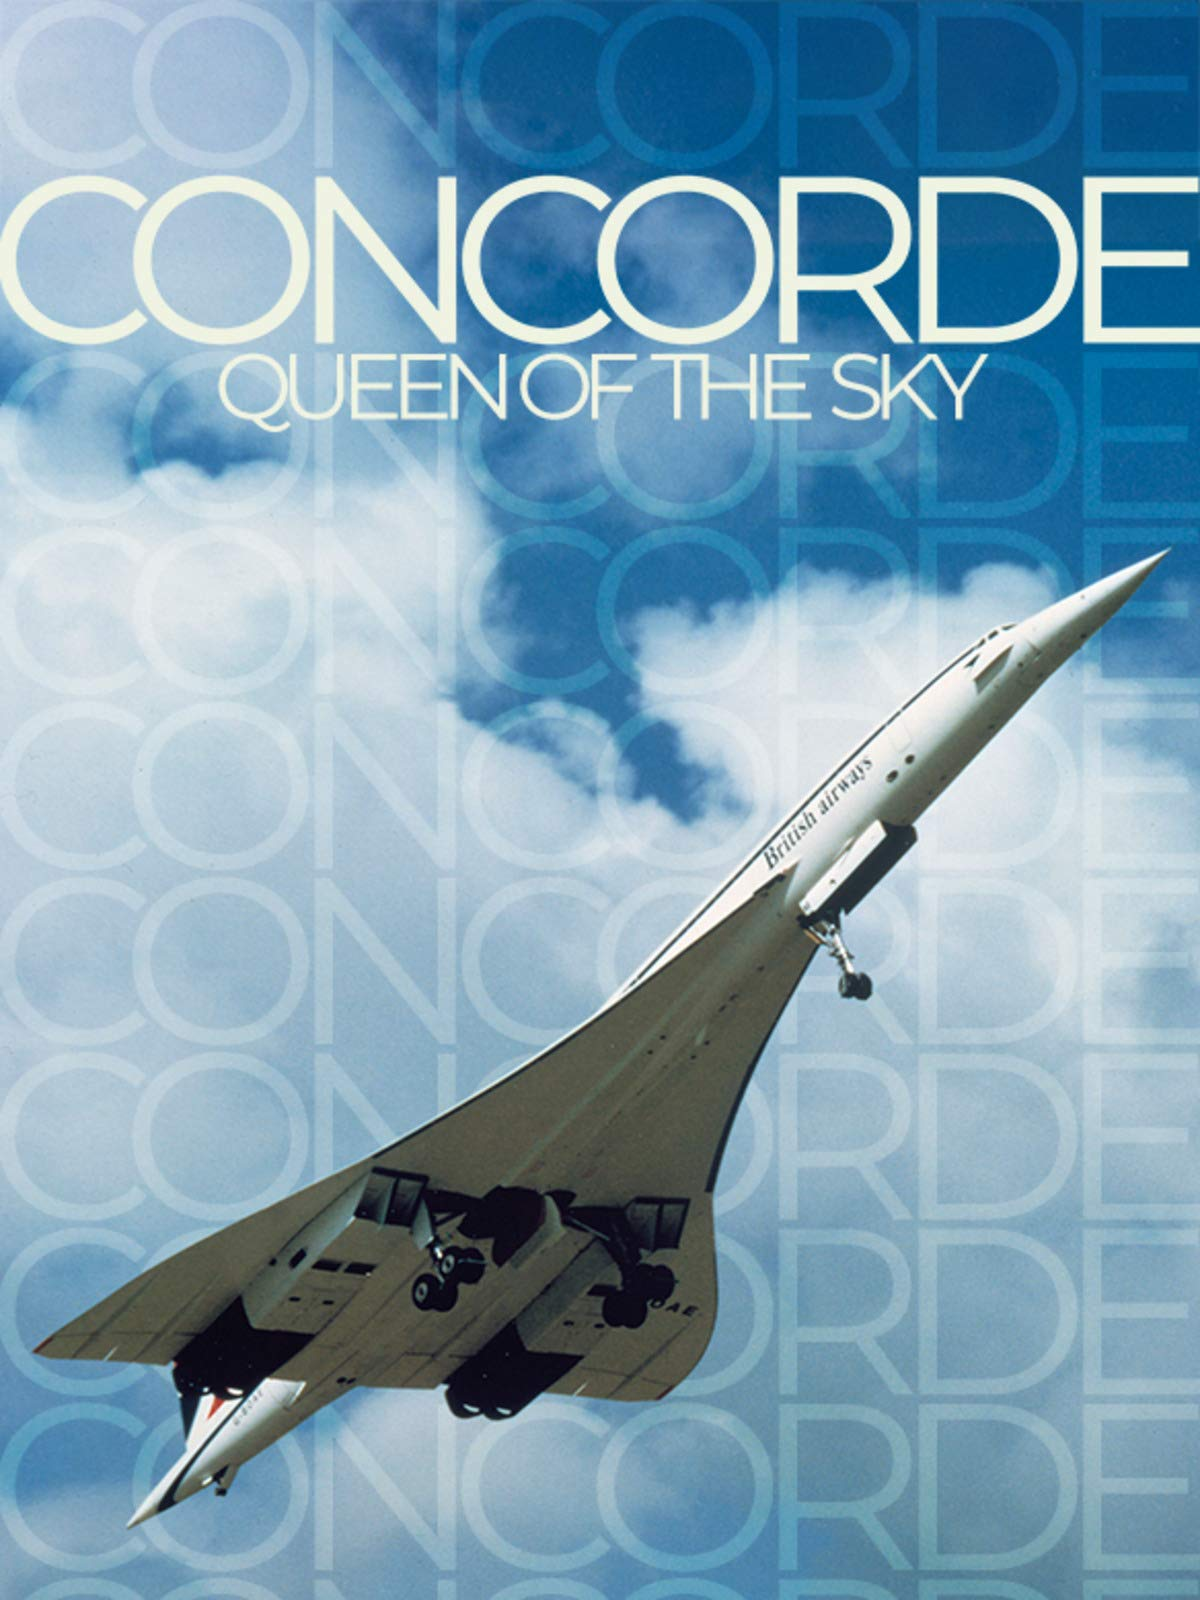 Concorde: Queen of the Sky